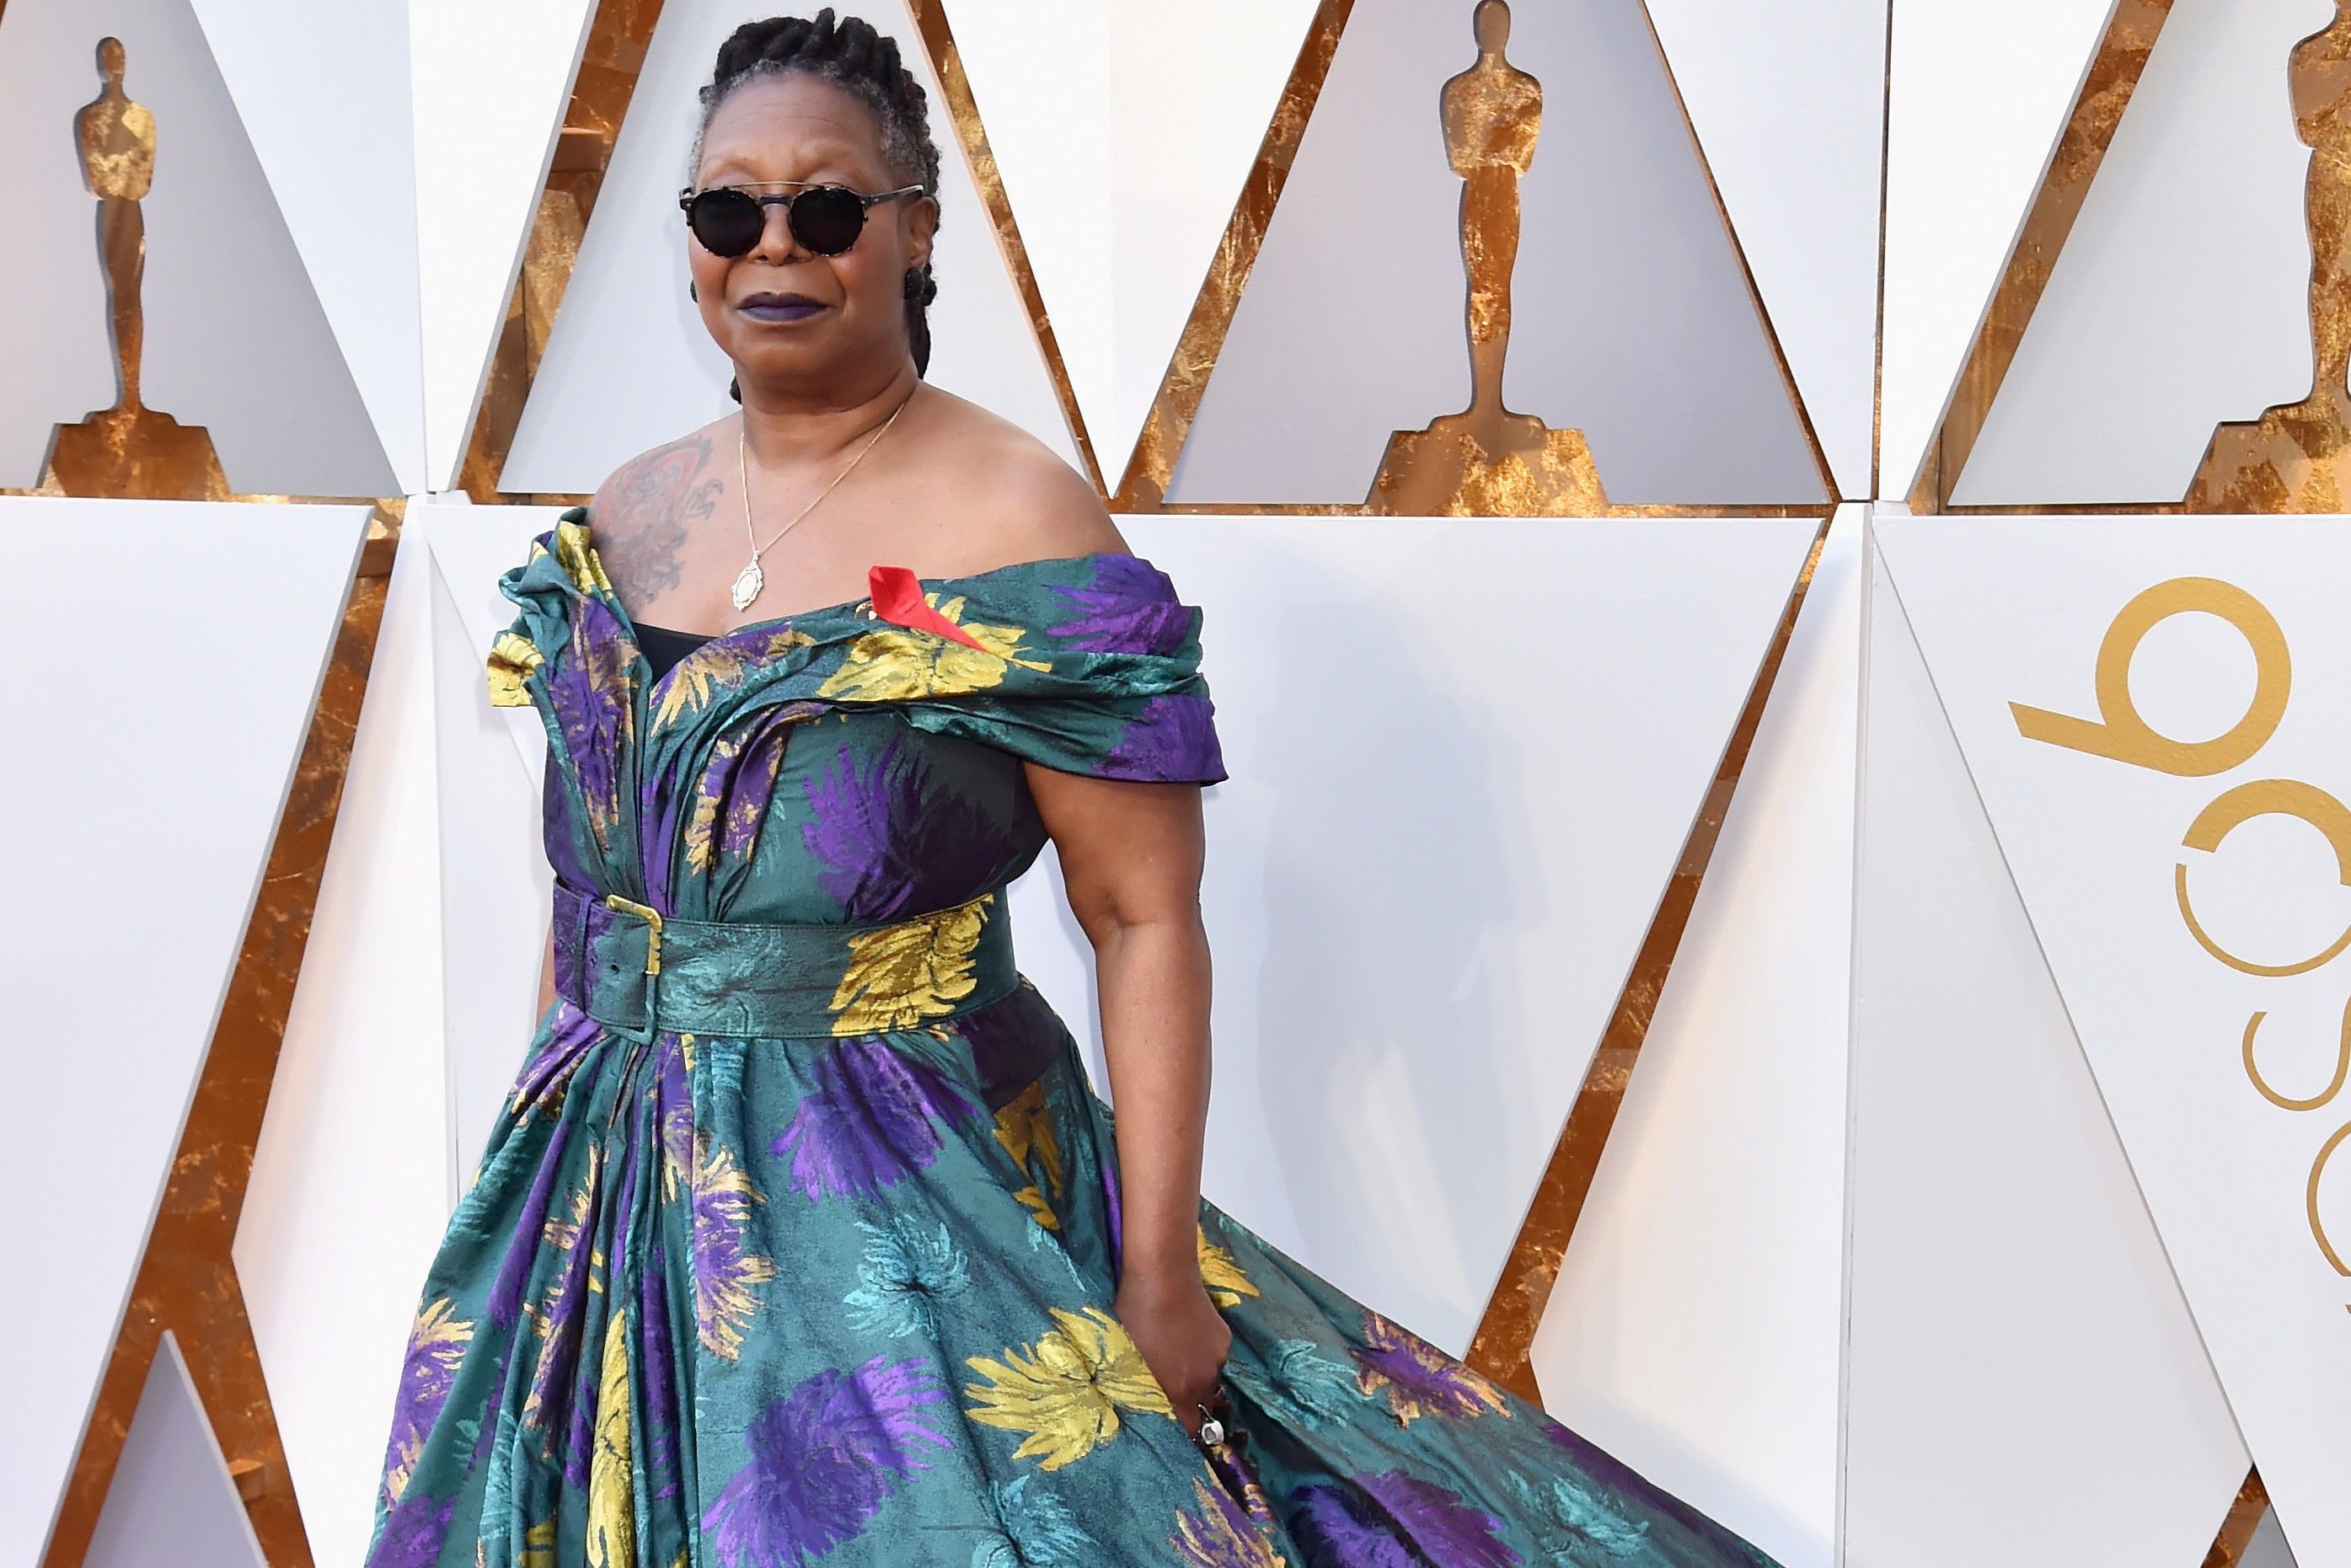 Oscars 2018 Sunglasses: What Sunglasses did celebrities wear?